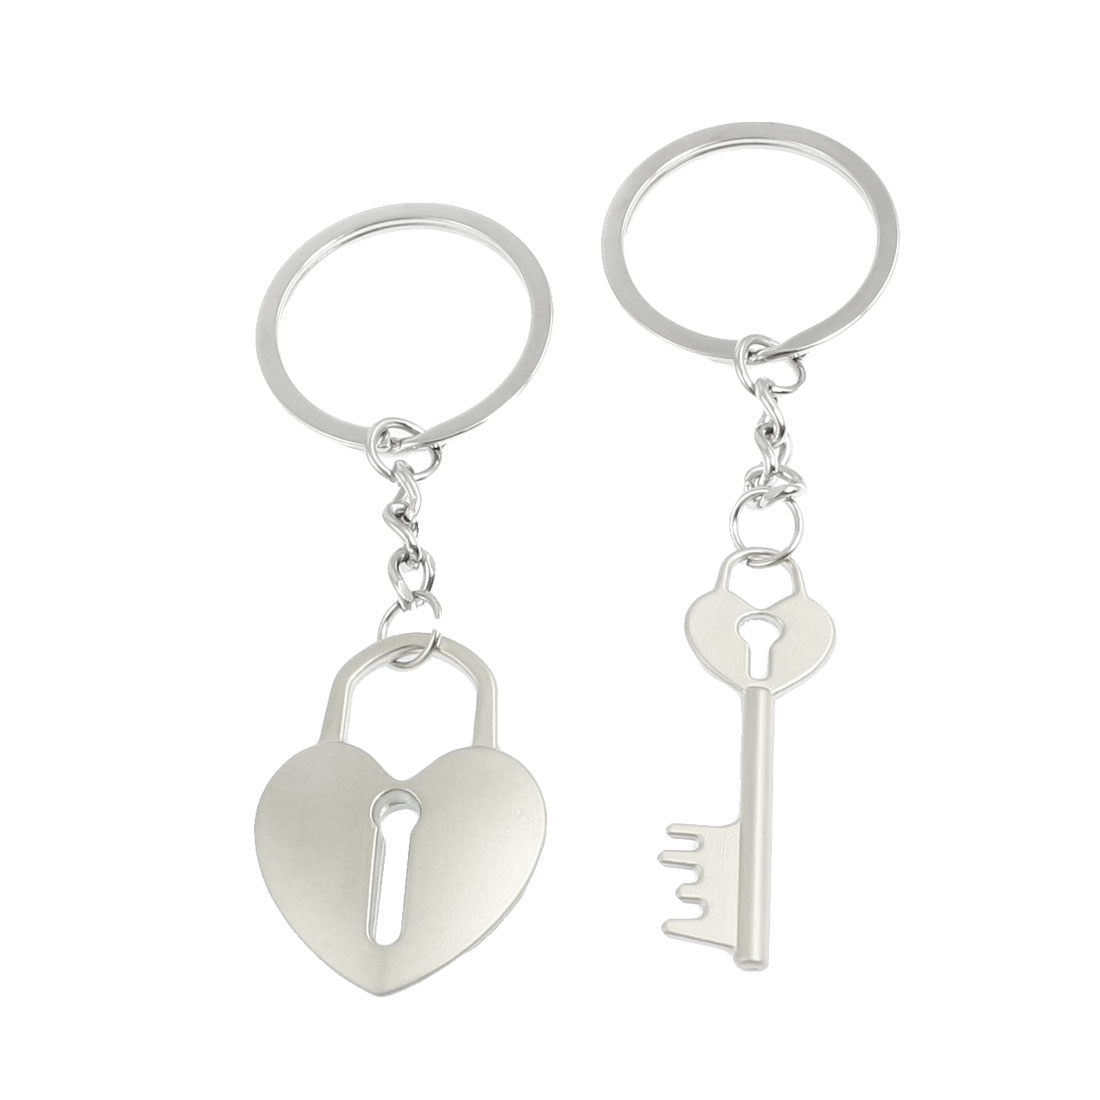 Lovers Heart Shape Key Pendants Keyring Keychain Pair Silver Tone